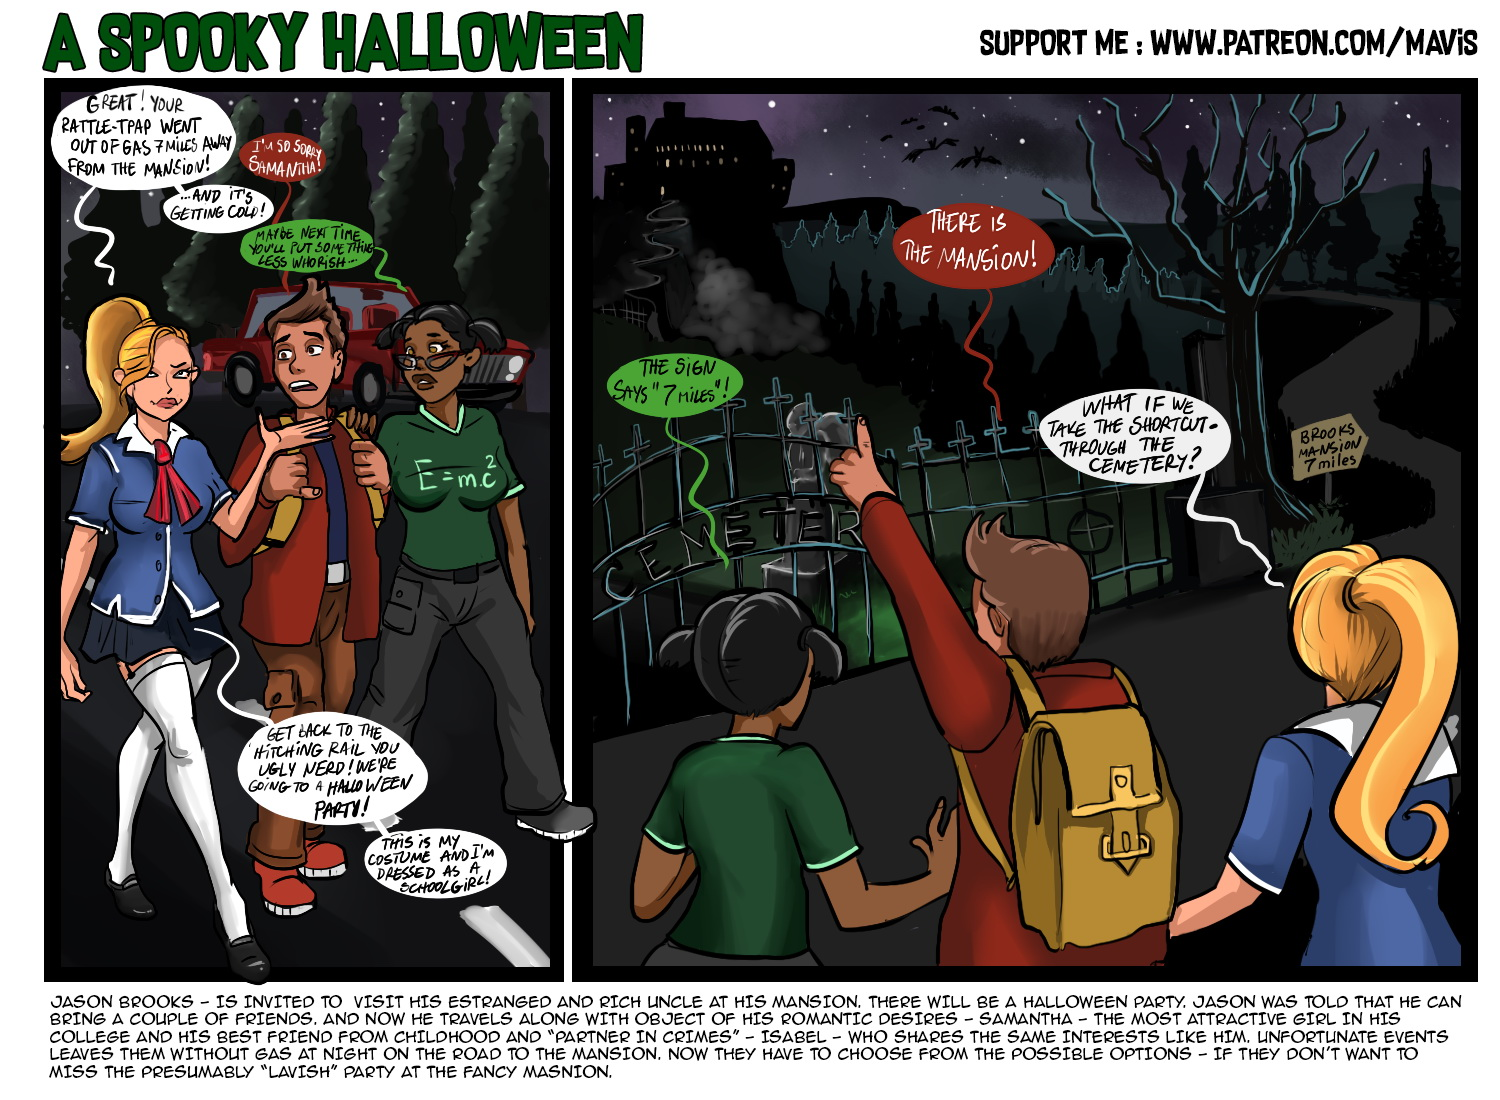 Spooky Halloween page 1